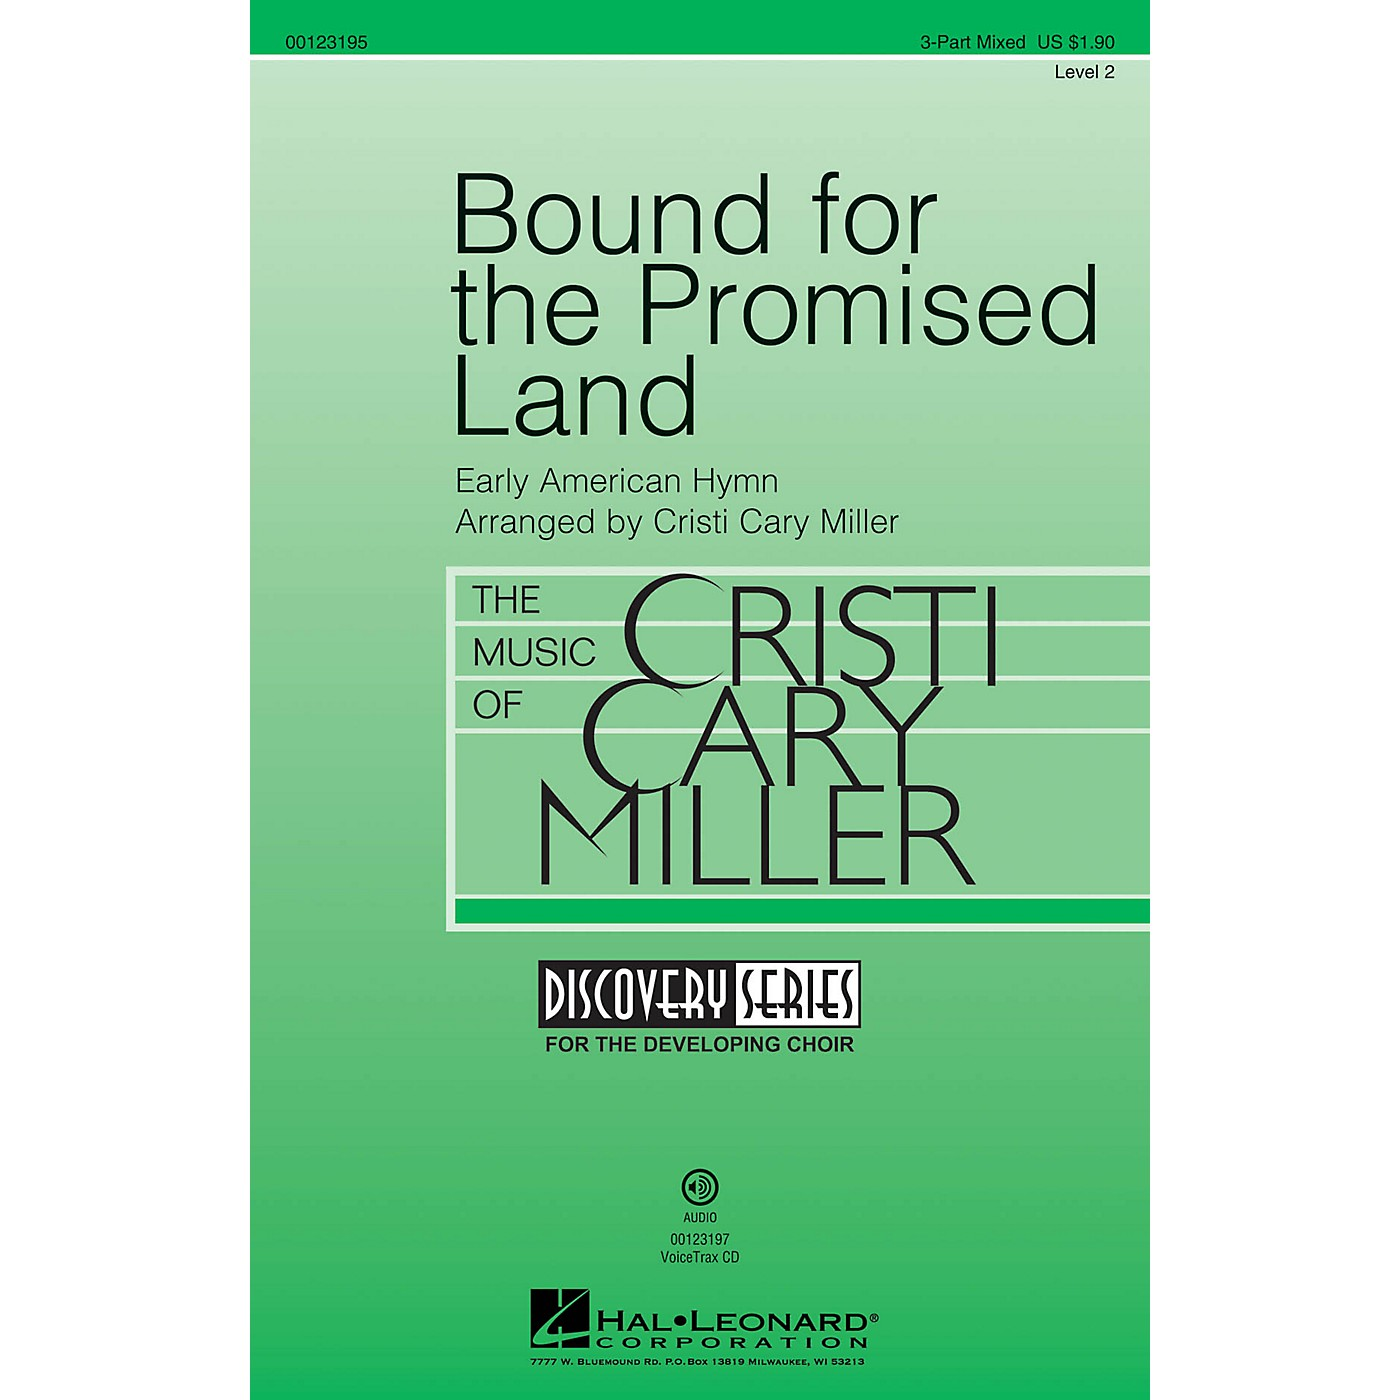 Hal Leonard Bound for the Promised Land (Discovery Level 2) 3-Part Mixed arranged by Cristi Cary Miller thumbnail